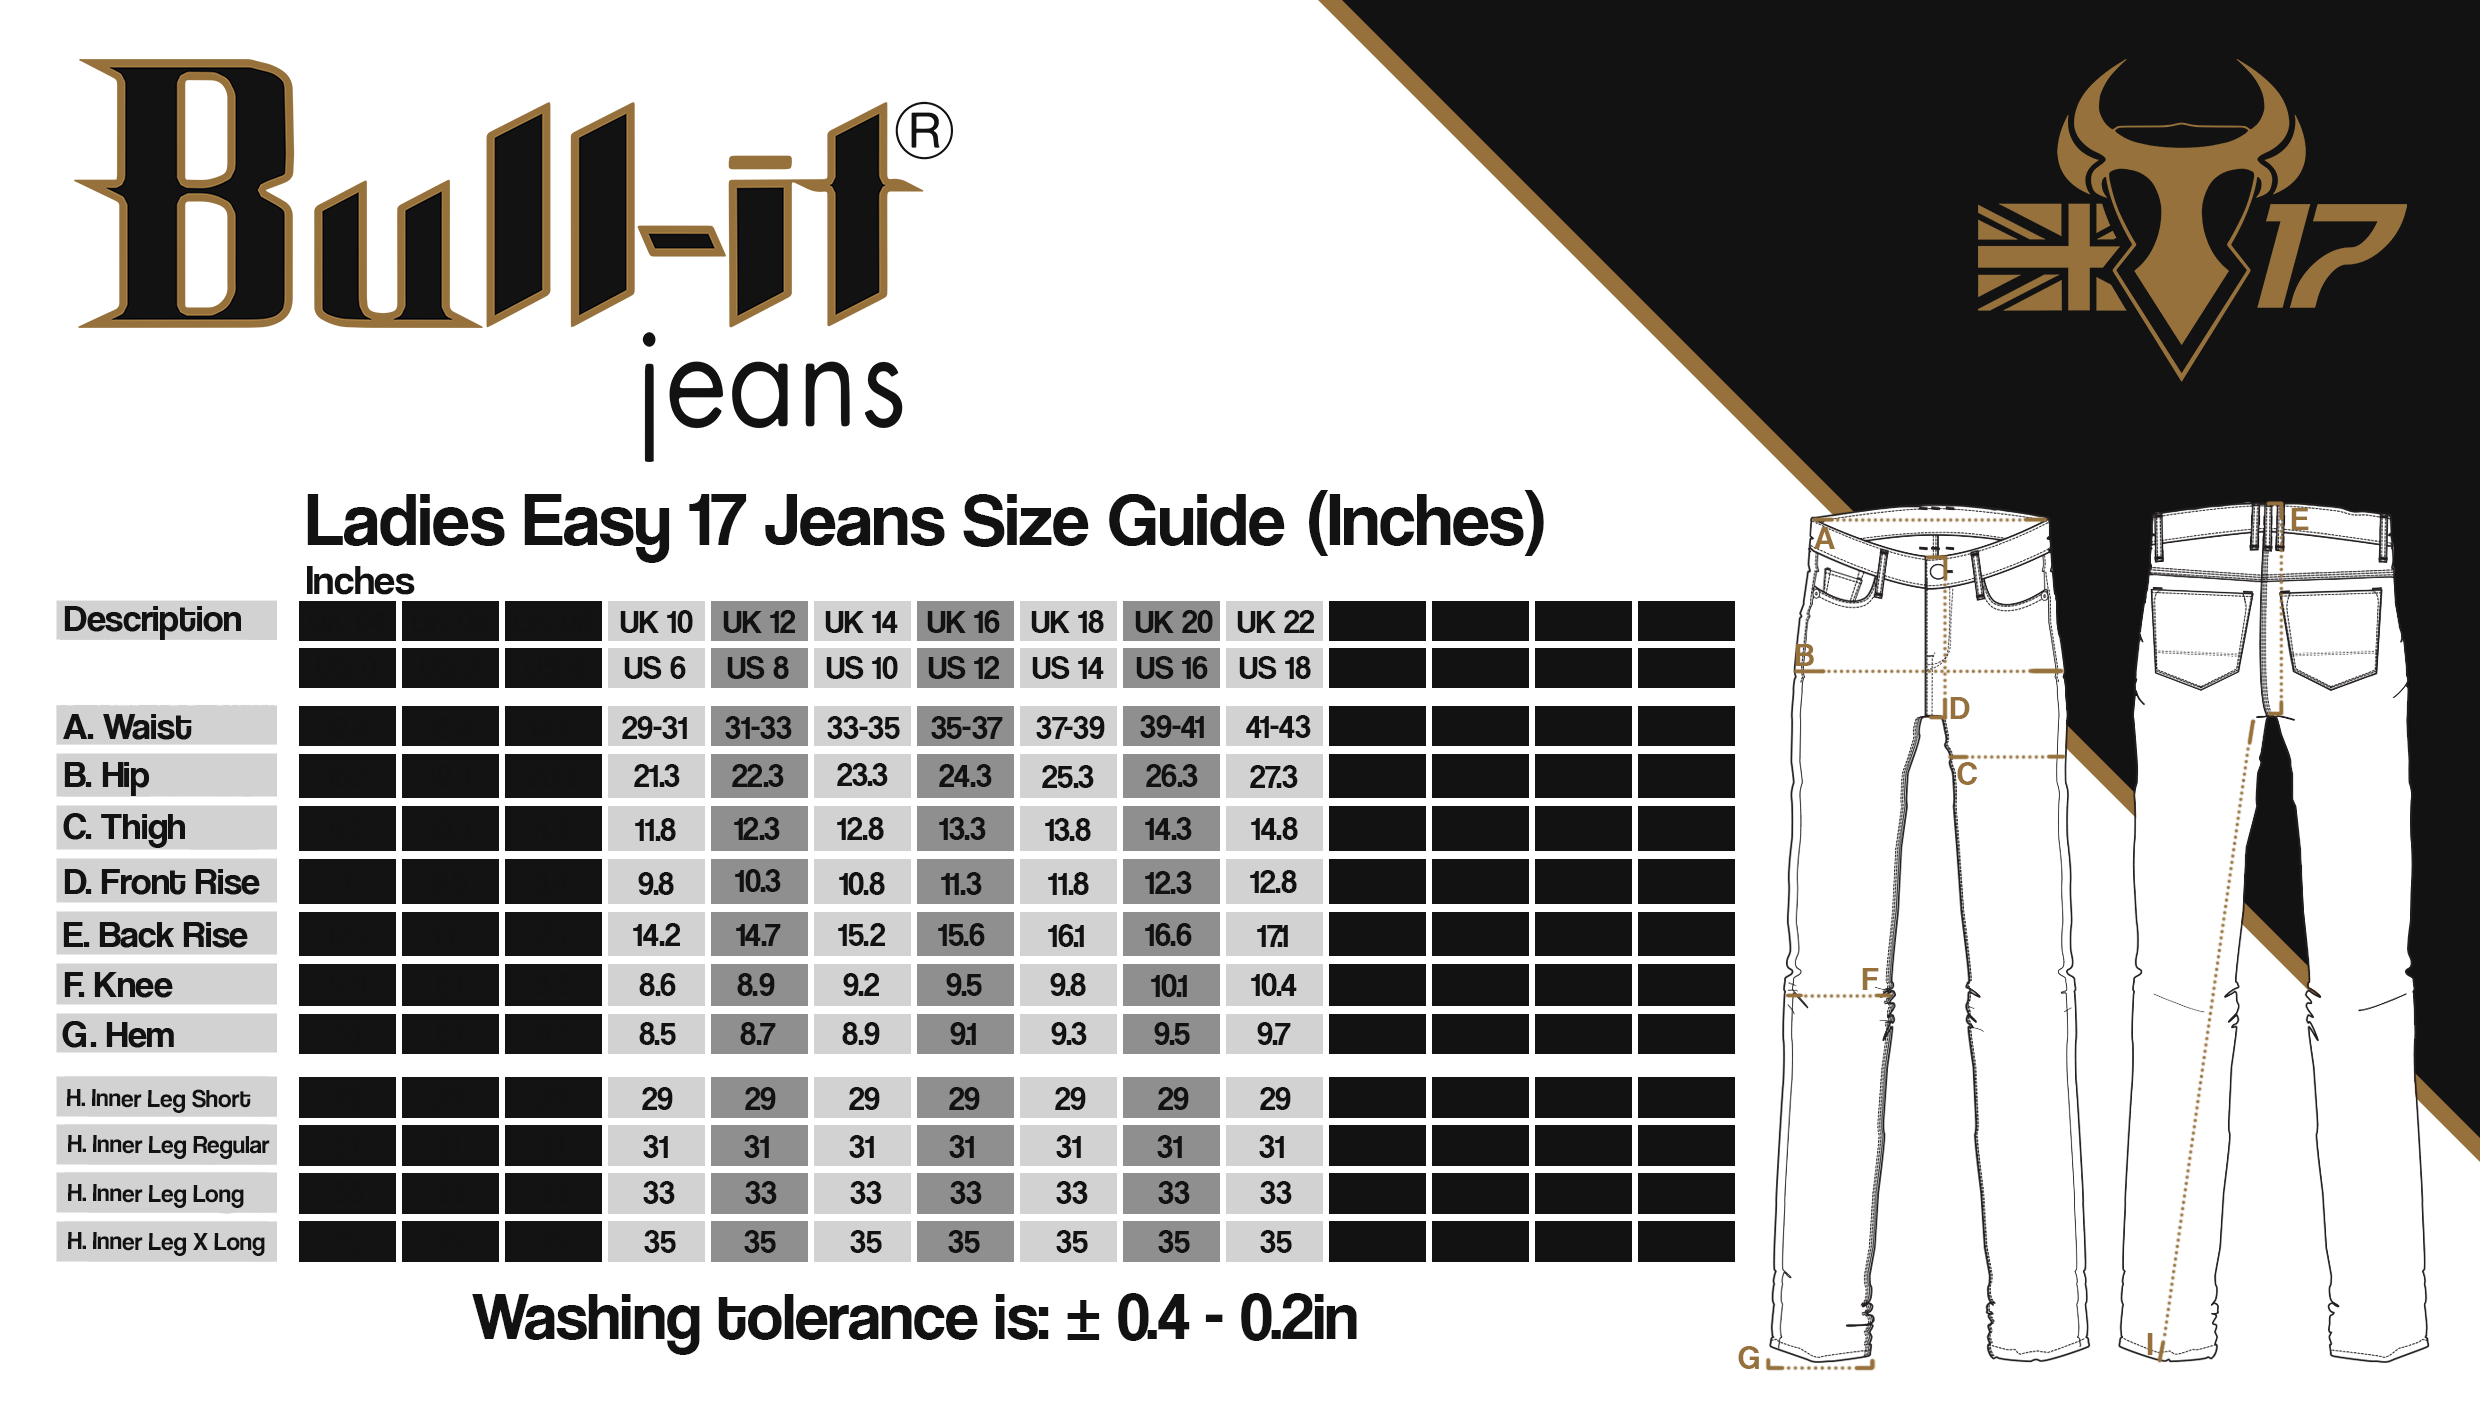 ladies-size-chart-ladies-easy-inches.png